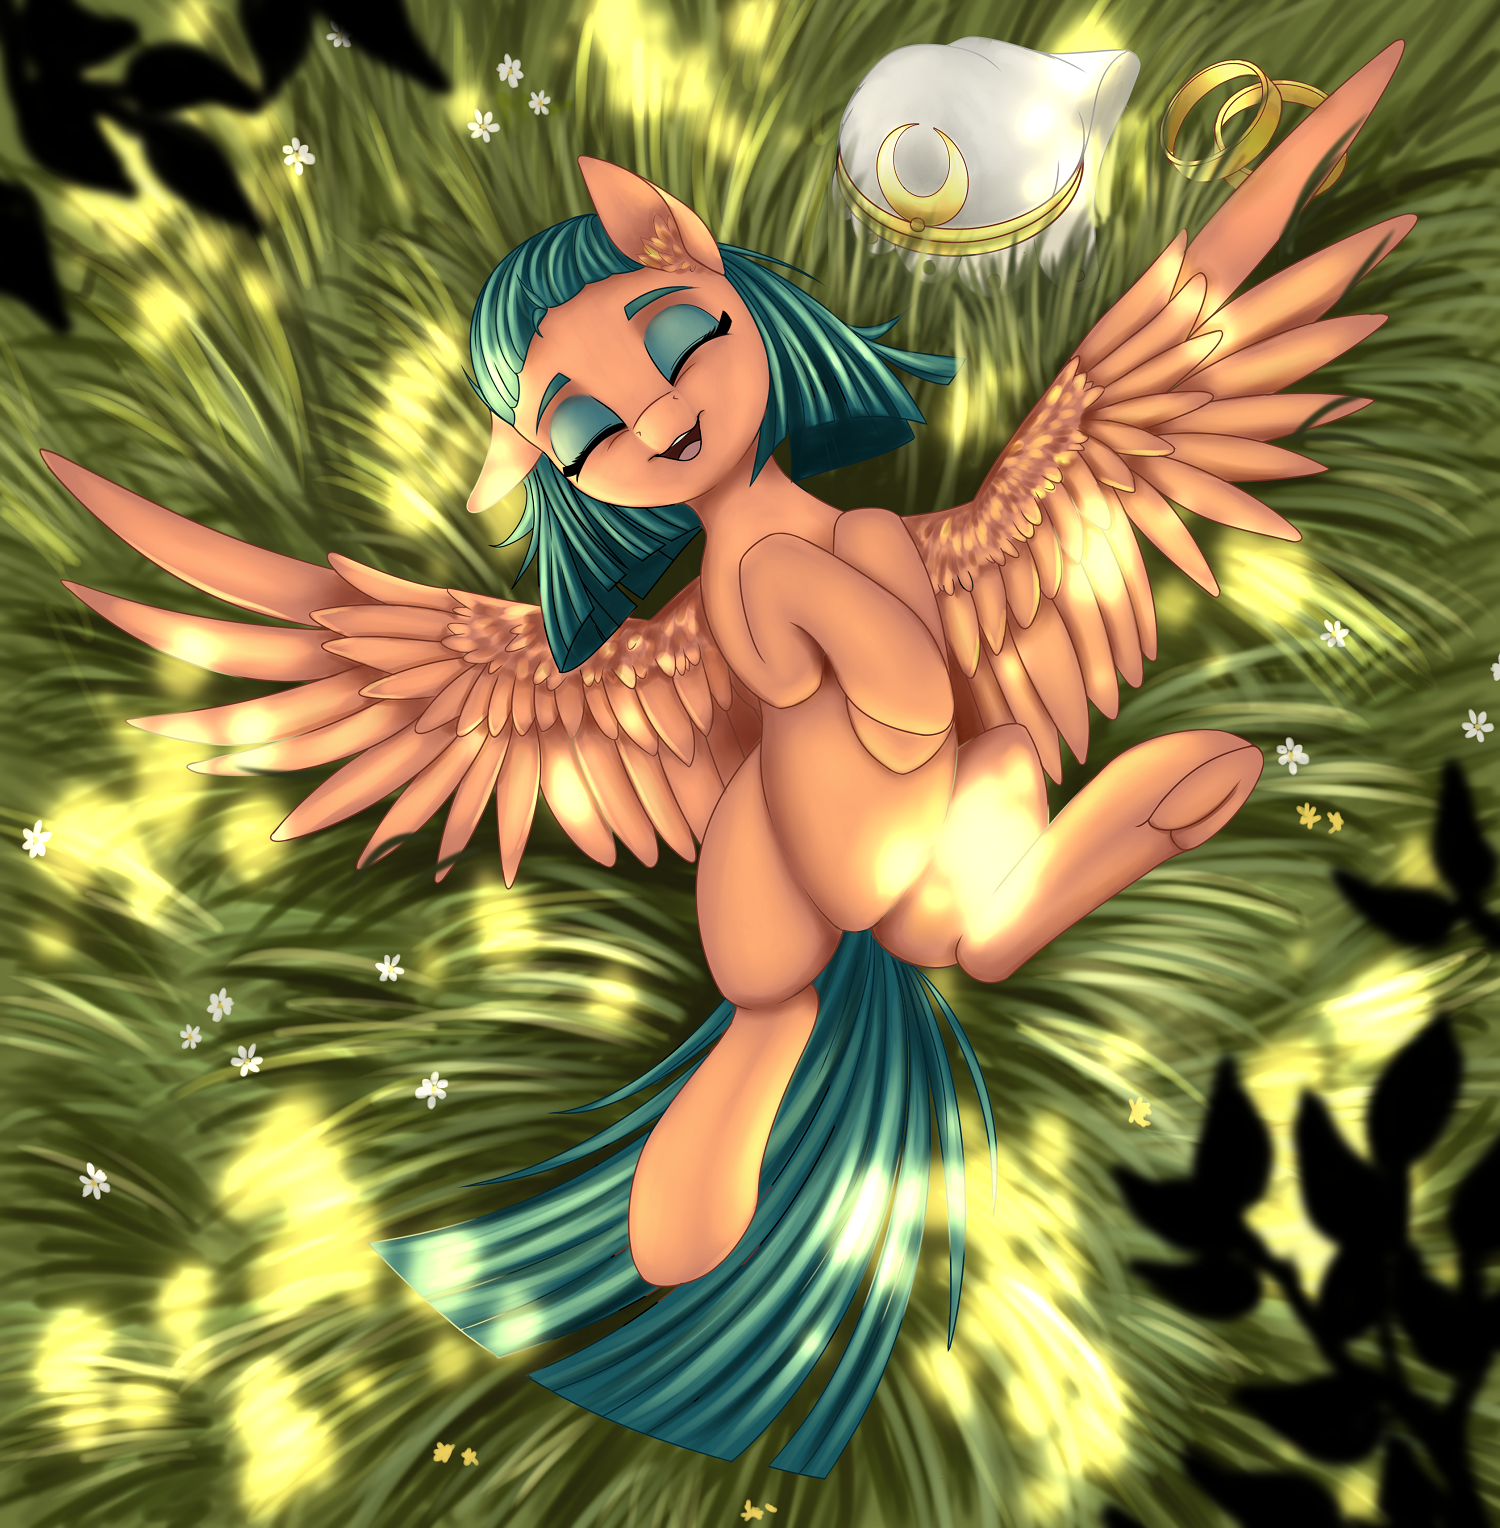 https://orig00.deviantart.net/aecf/f/2018/258/5/e/somnambula_by_pony_way-dcmx873.png